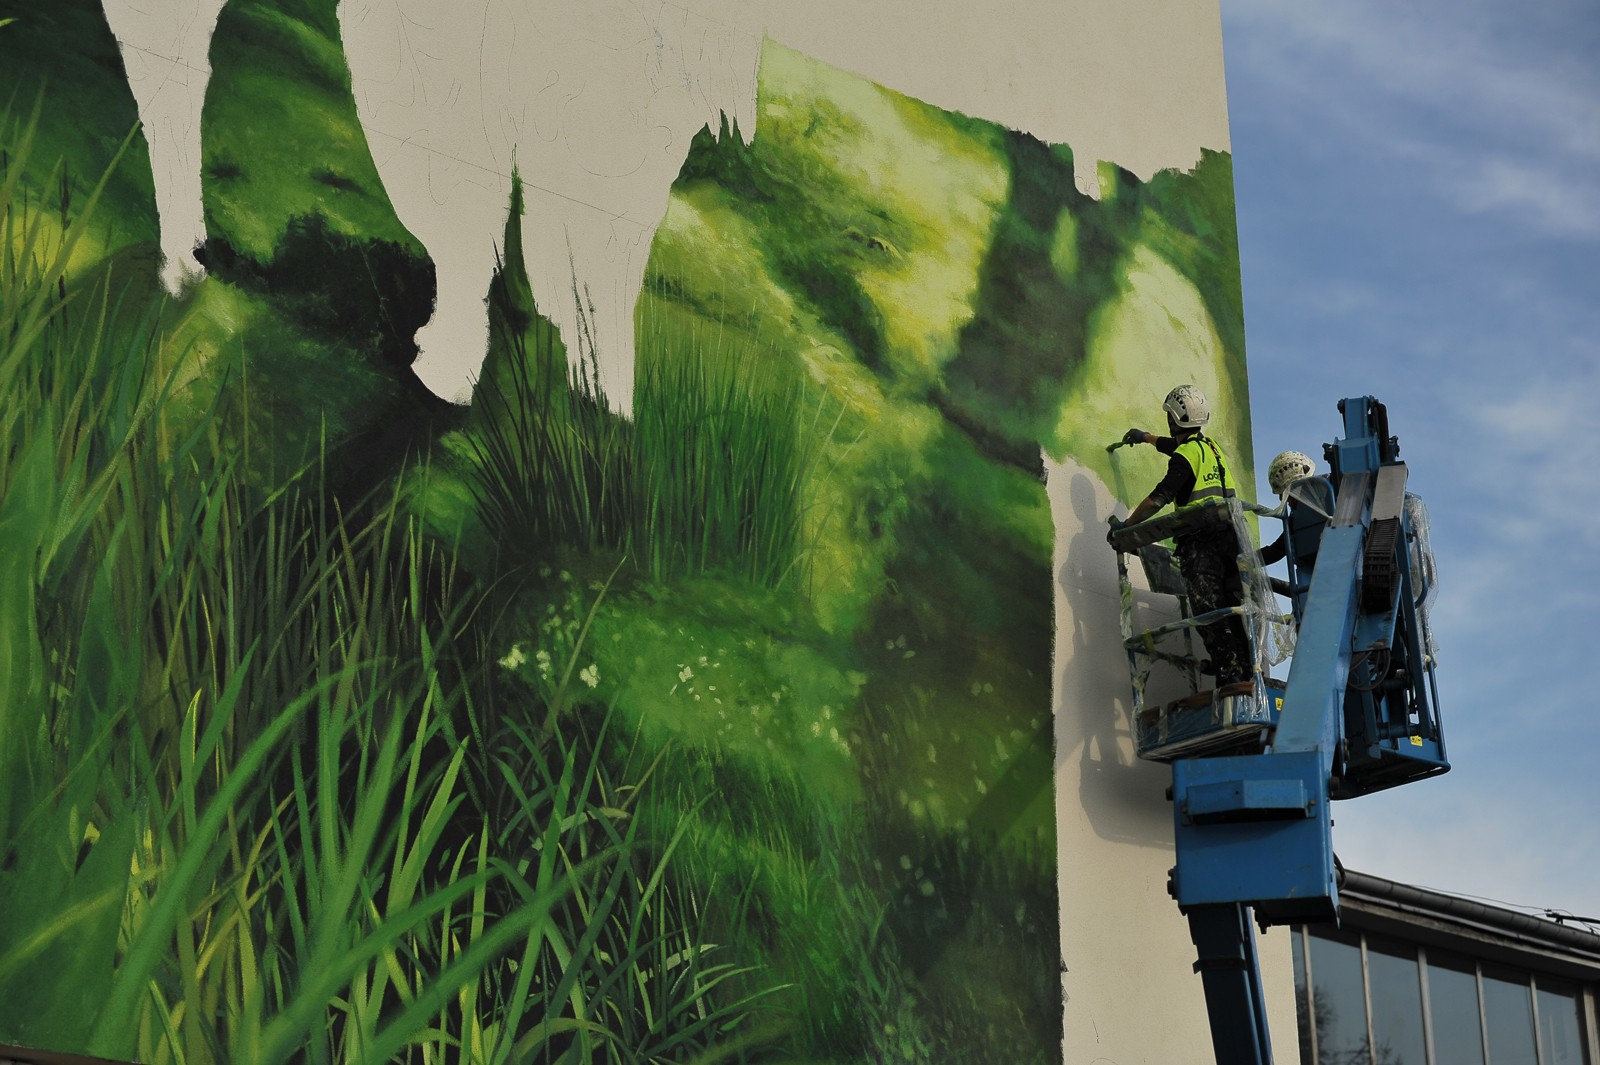 Mural painted next to a Polmos factory in Bialystok a manufacturer of Zubrowka brand vodka | Zubrowka | Portfolio